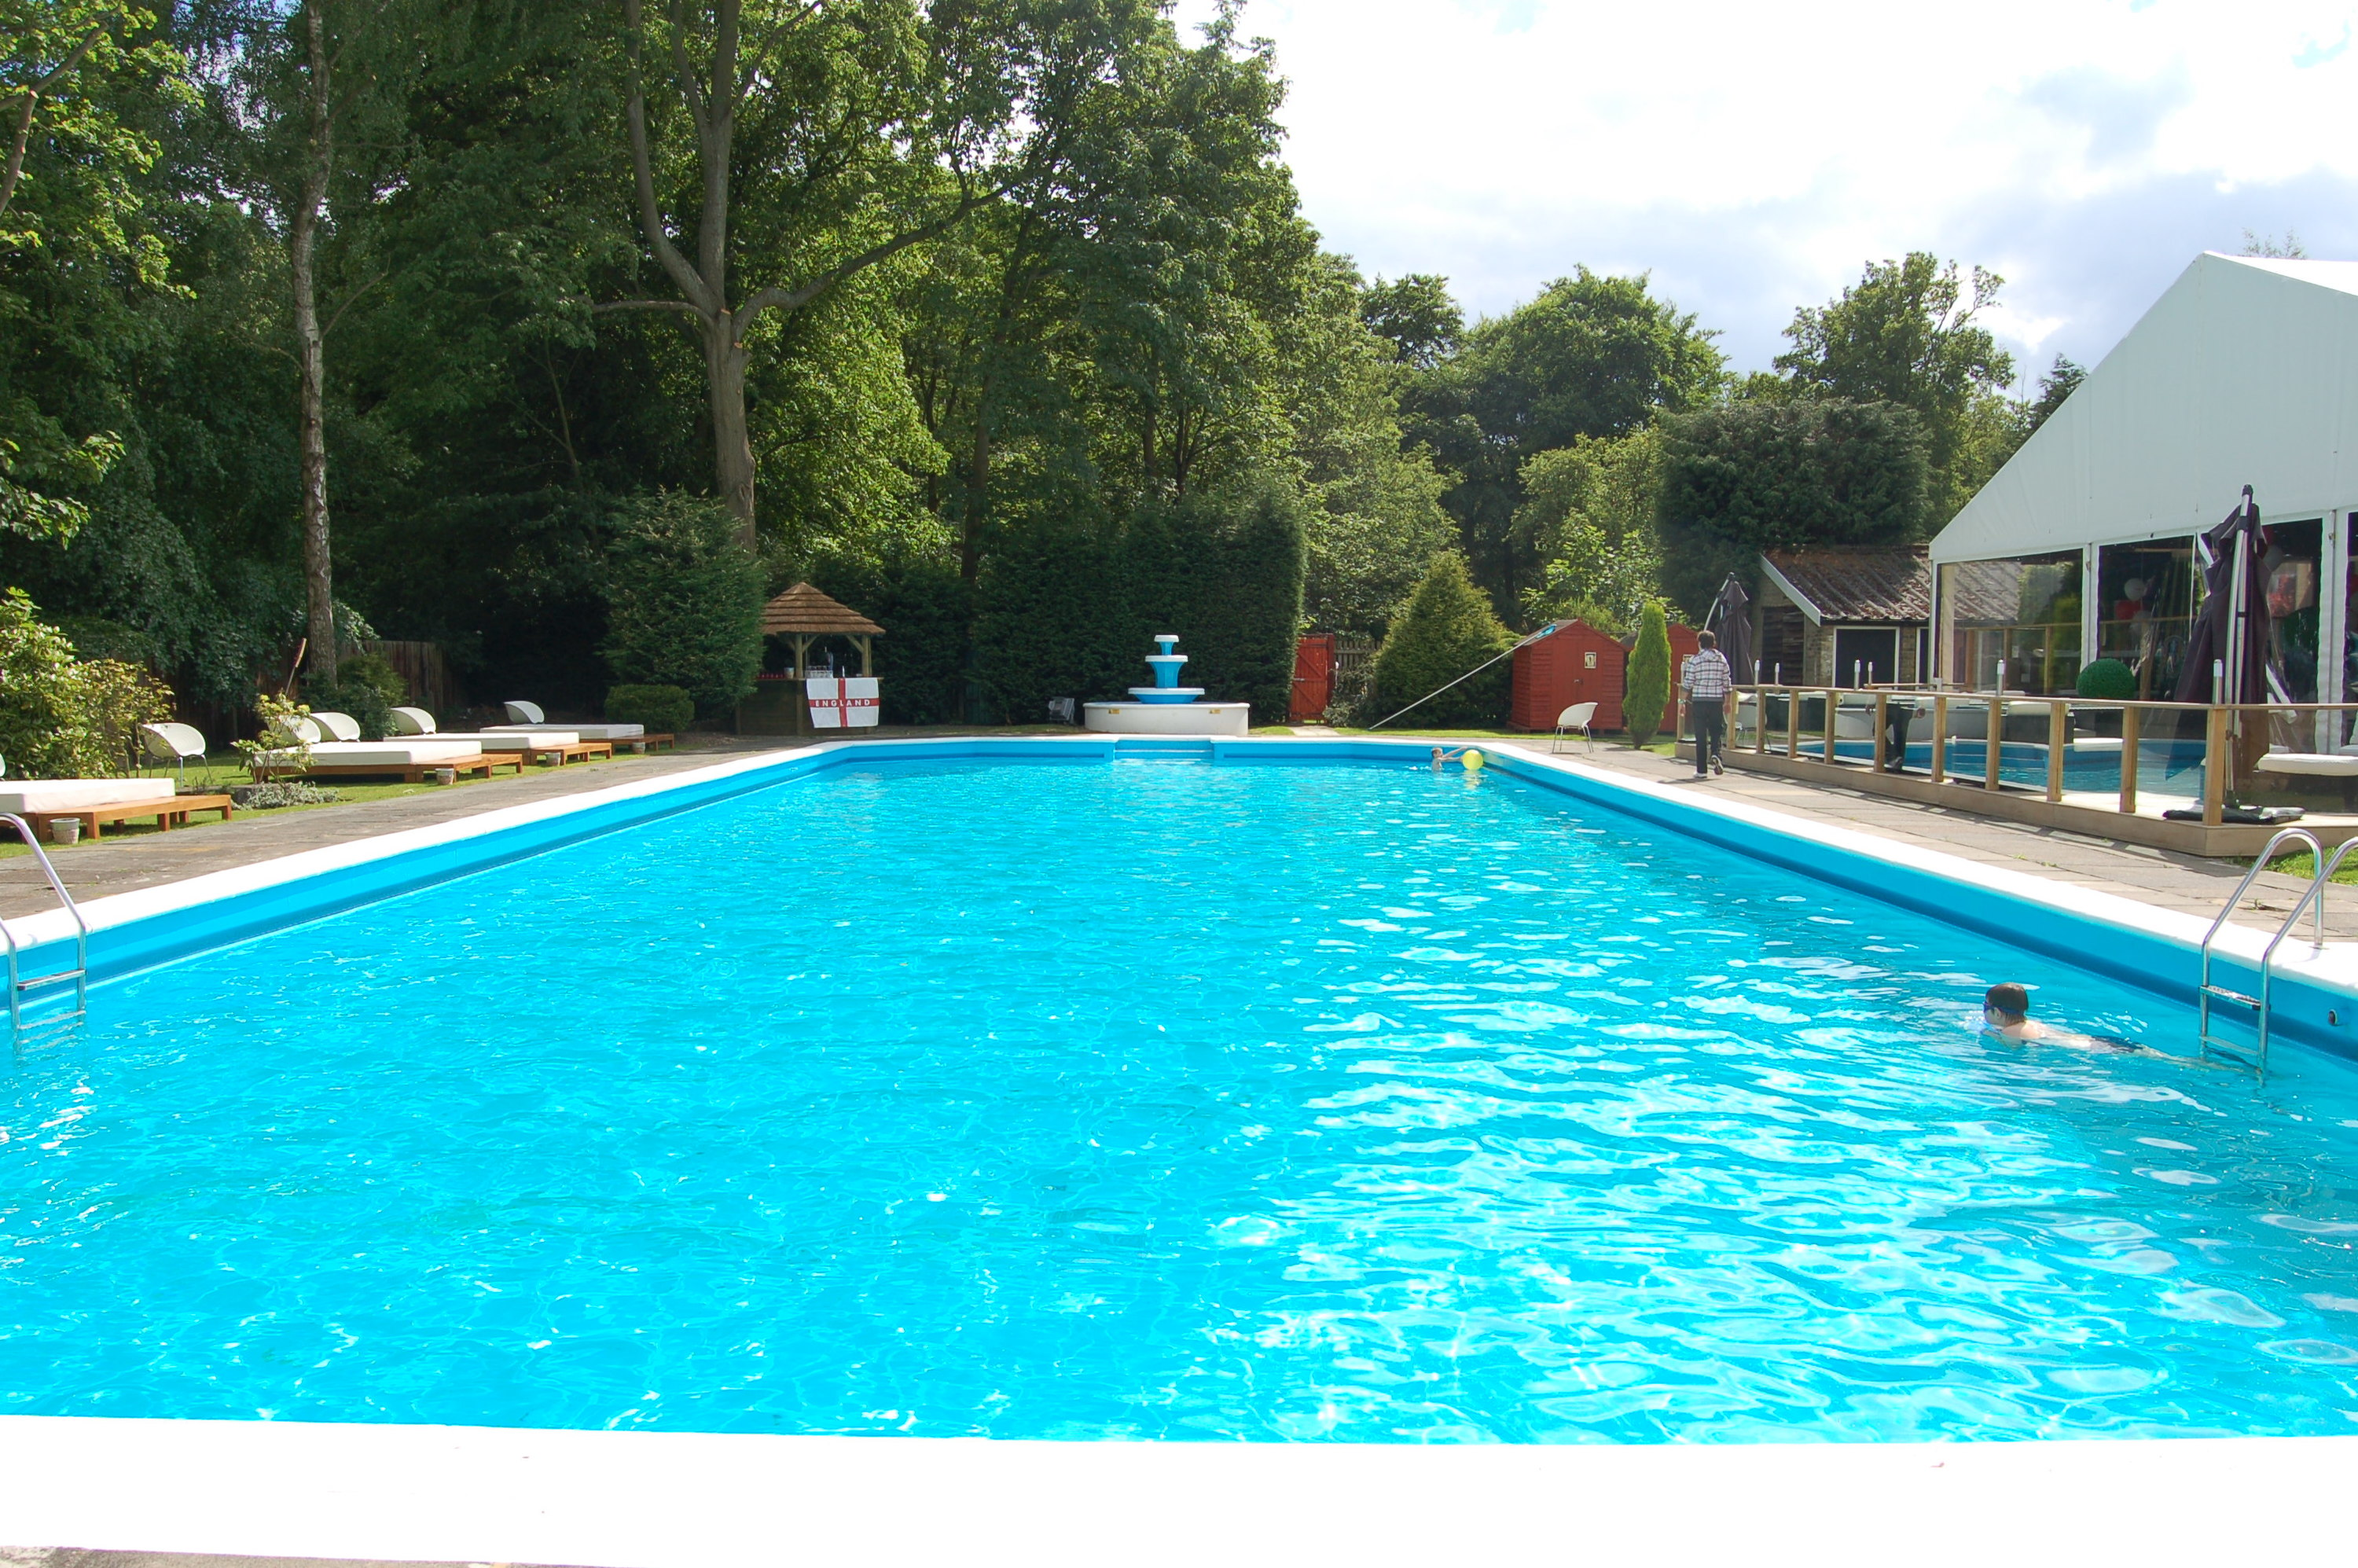 Outdoor Swimming Pool Berlin Swimming Pool Erdeinbau Ovalbecken 7 30m X 3 60m X 1 32 M